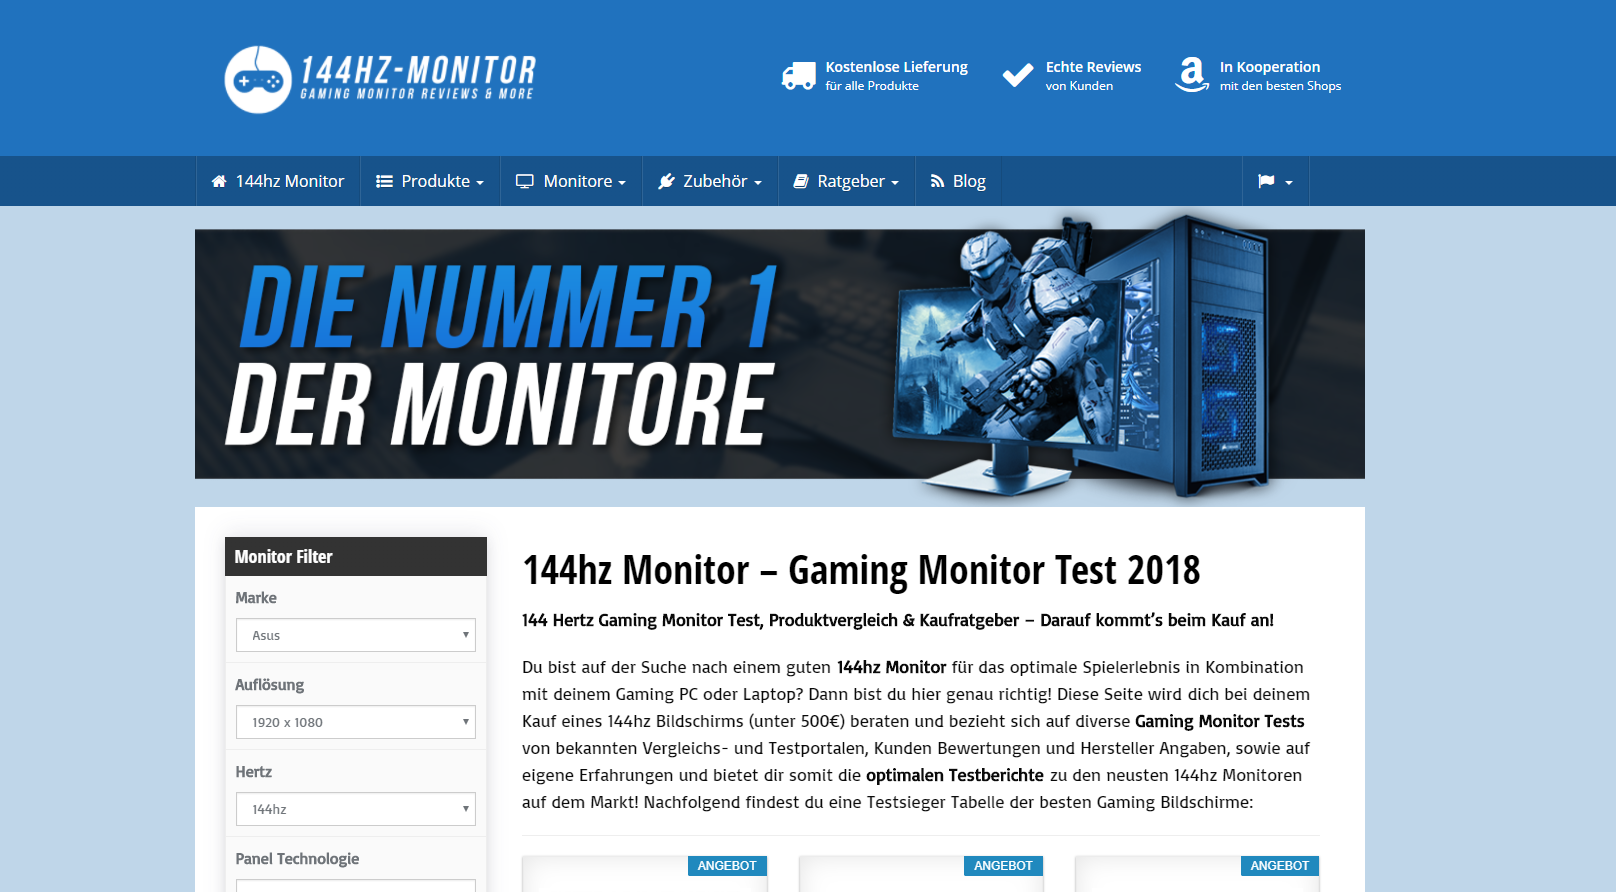 144hz-monitor.org